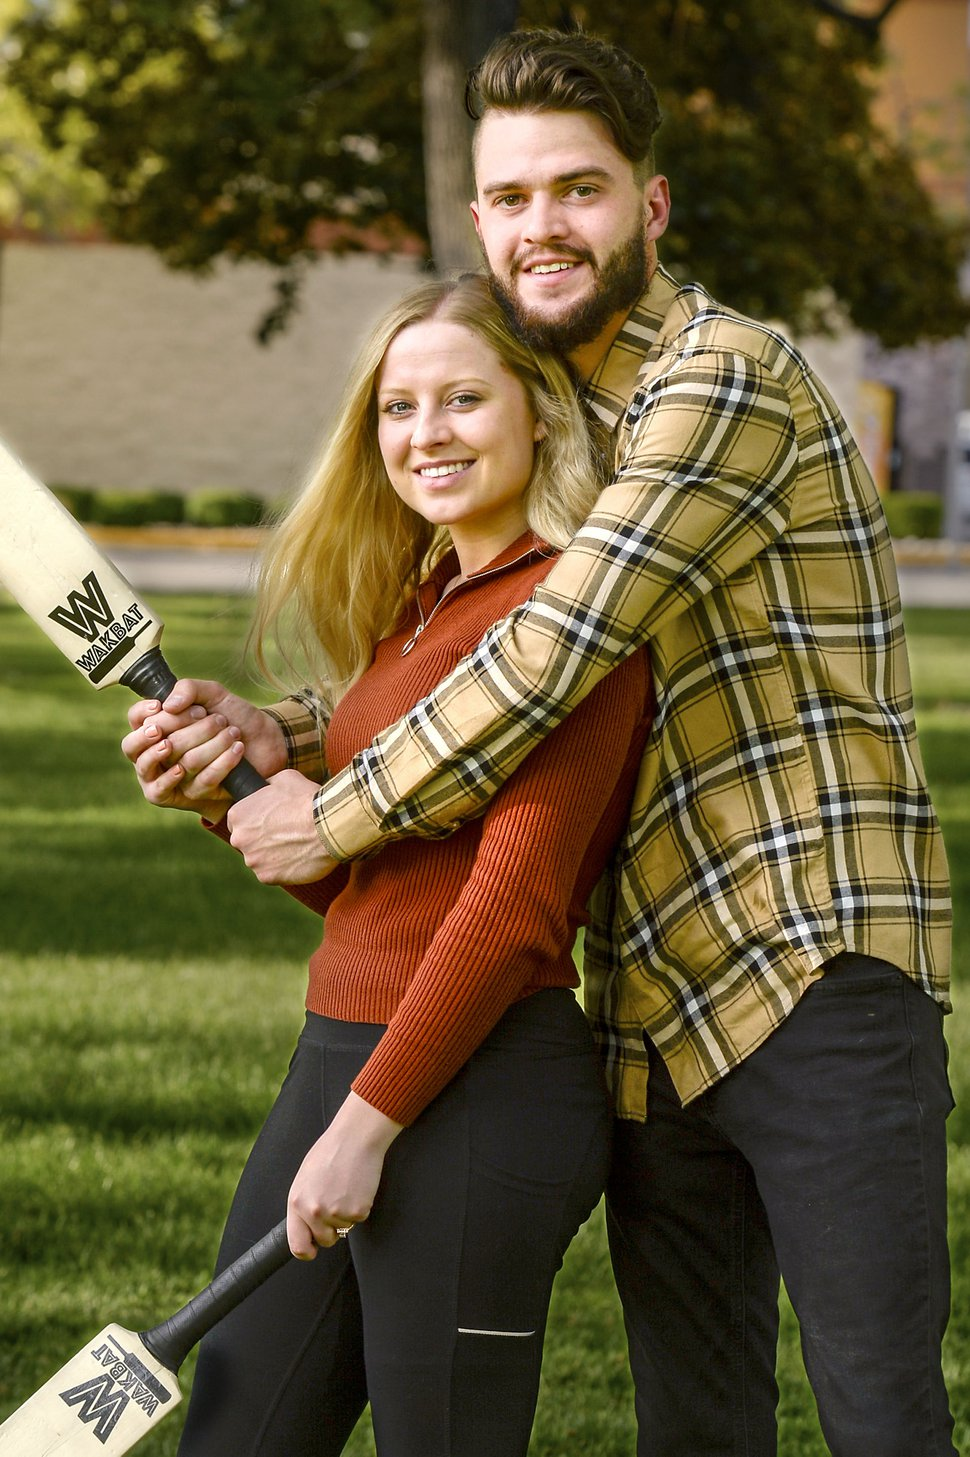 (Leah Hogsten | The Salt Lake Tribune) High School sweethearts turned college students Josh Crockett and wife Sydney Crockett have created Wakbat, a friendly lawn game, May 11, 2020. Wakbat is a derivative of a game they saw played in the city of Sao Paulo during their LDS missions to Brazil.